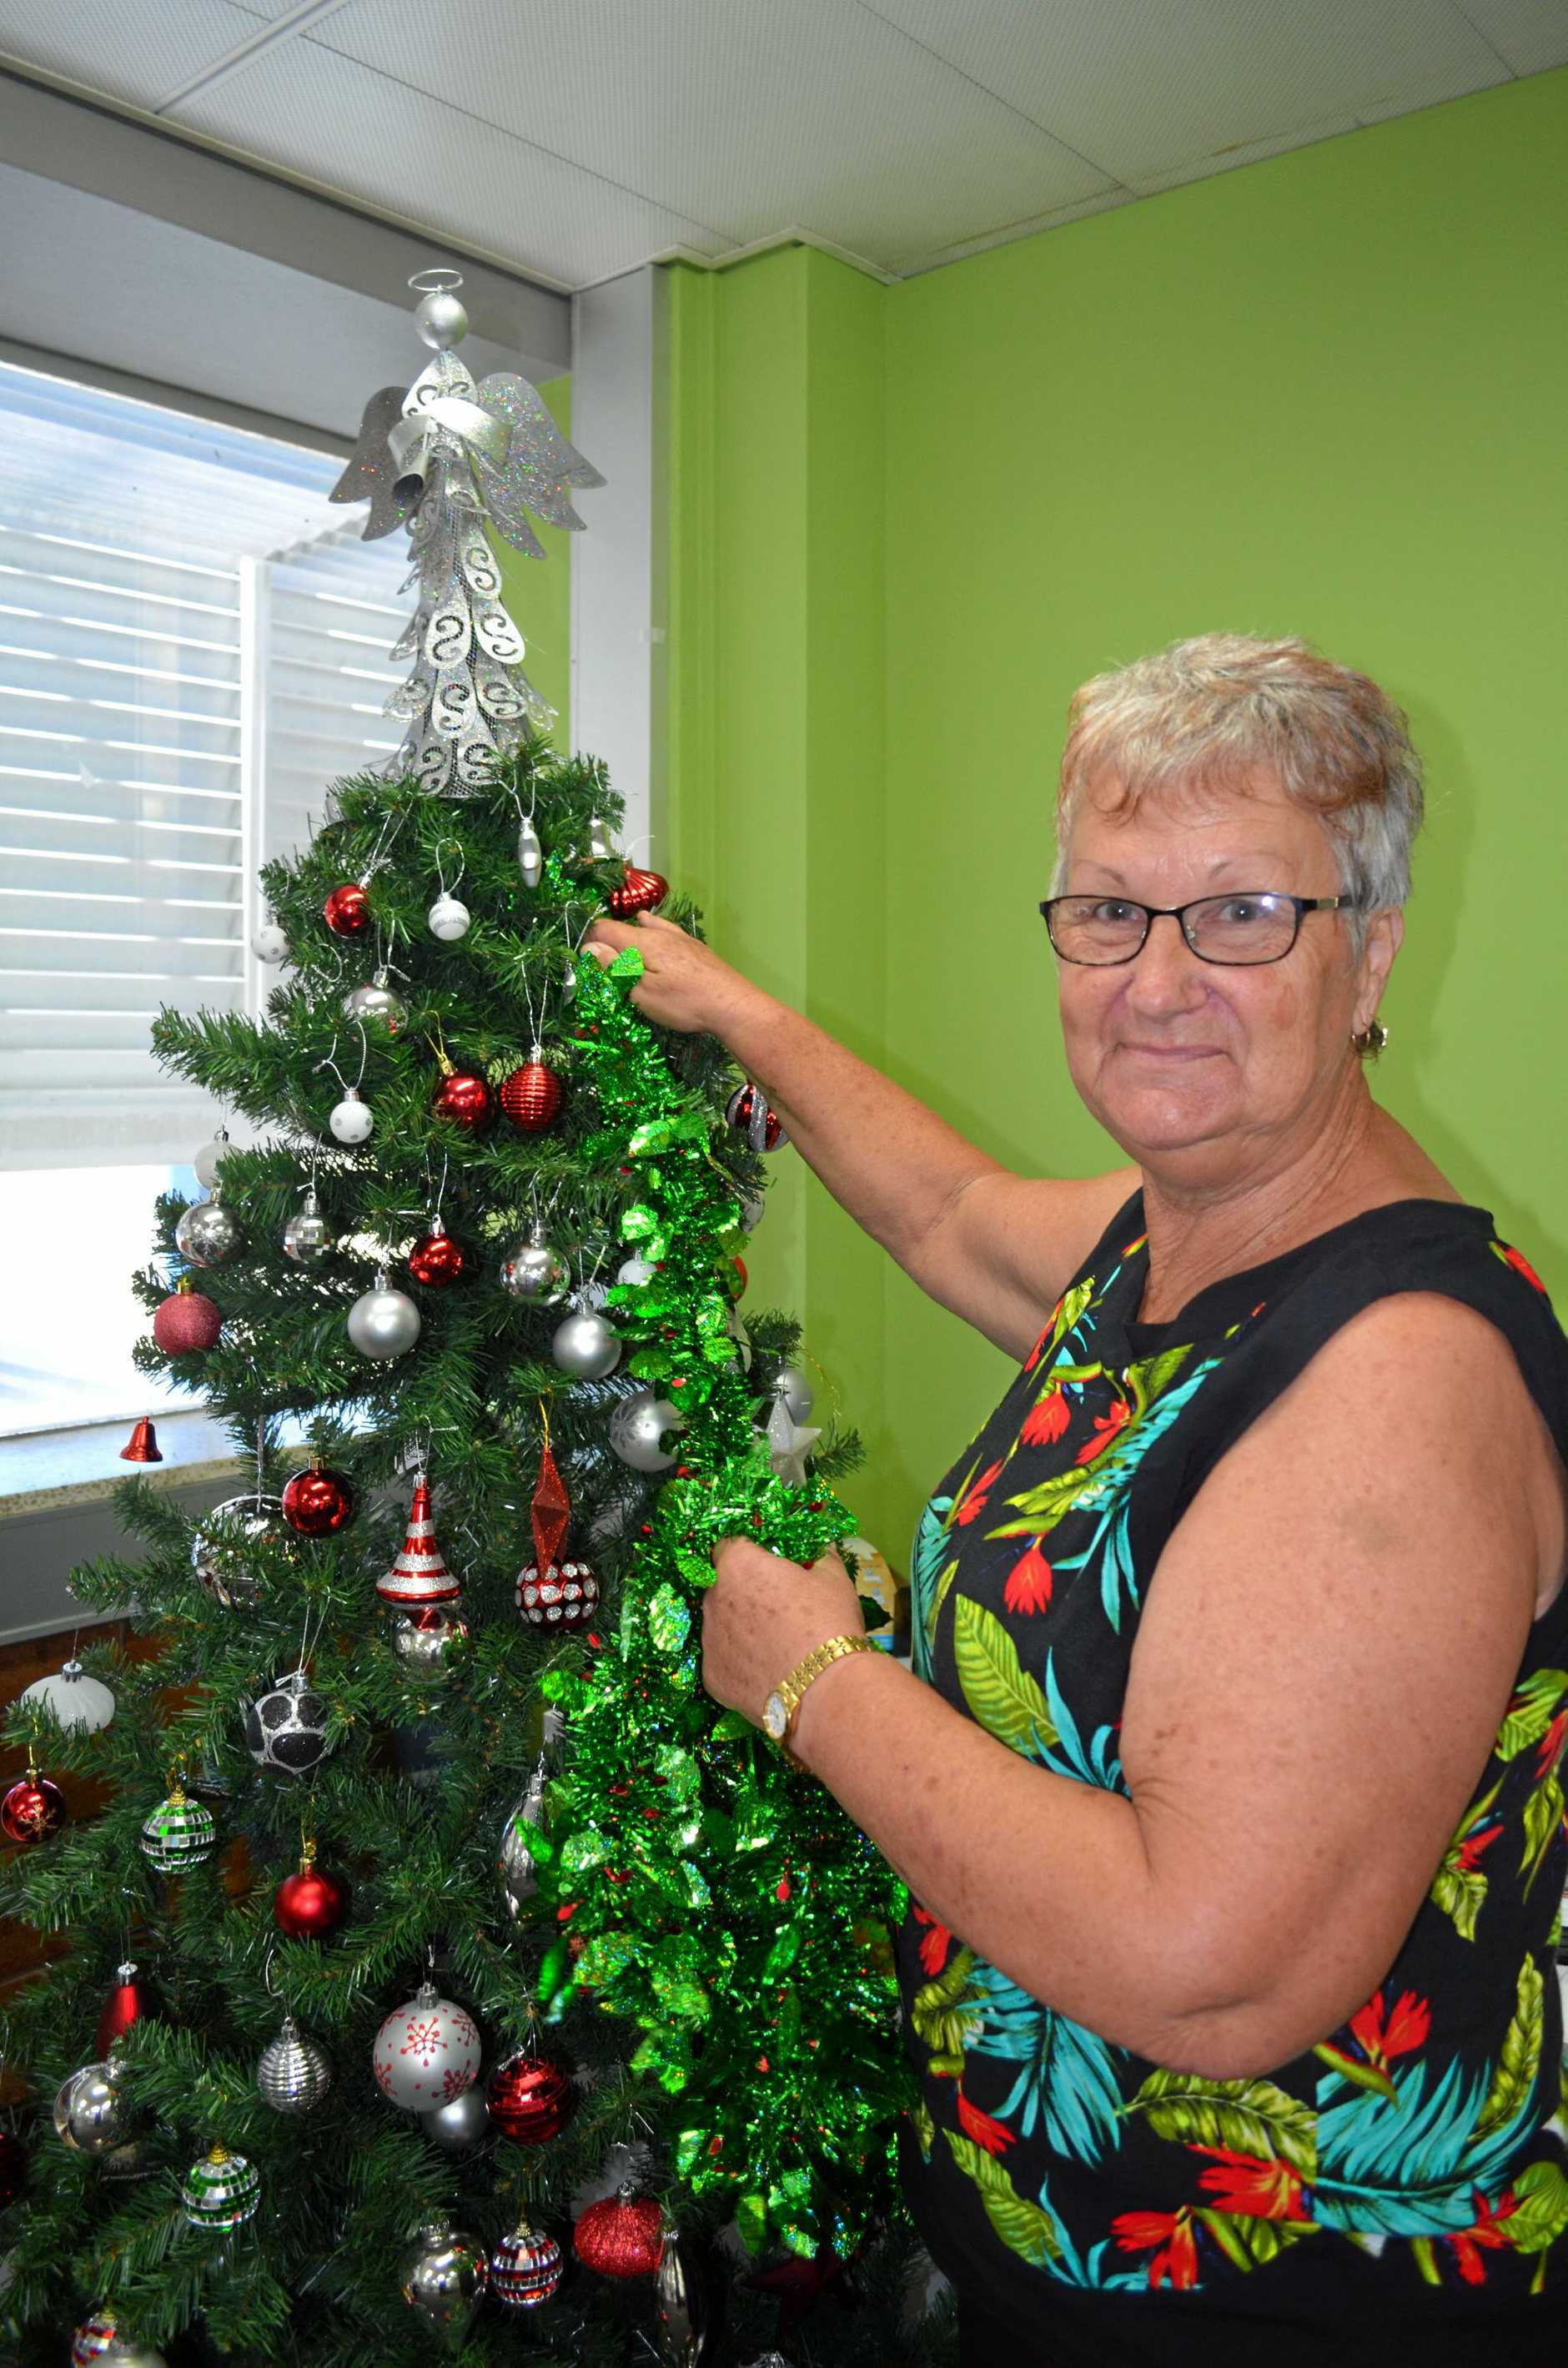 Sarina resident Lyn Birch enjoys decorating her house each year and won the Christmas Lights competition in 2015 at a value of $3000.